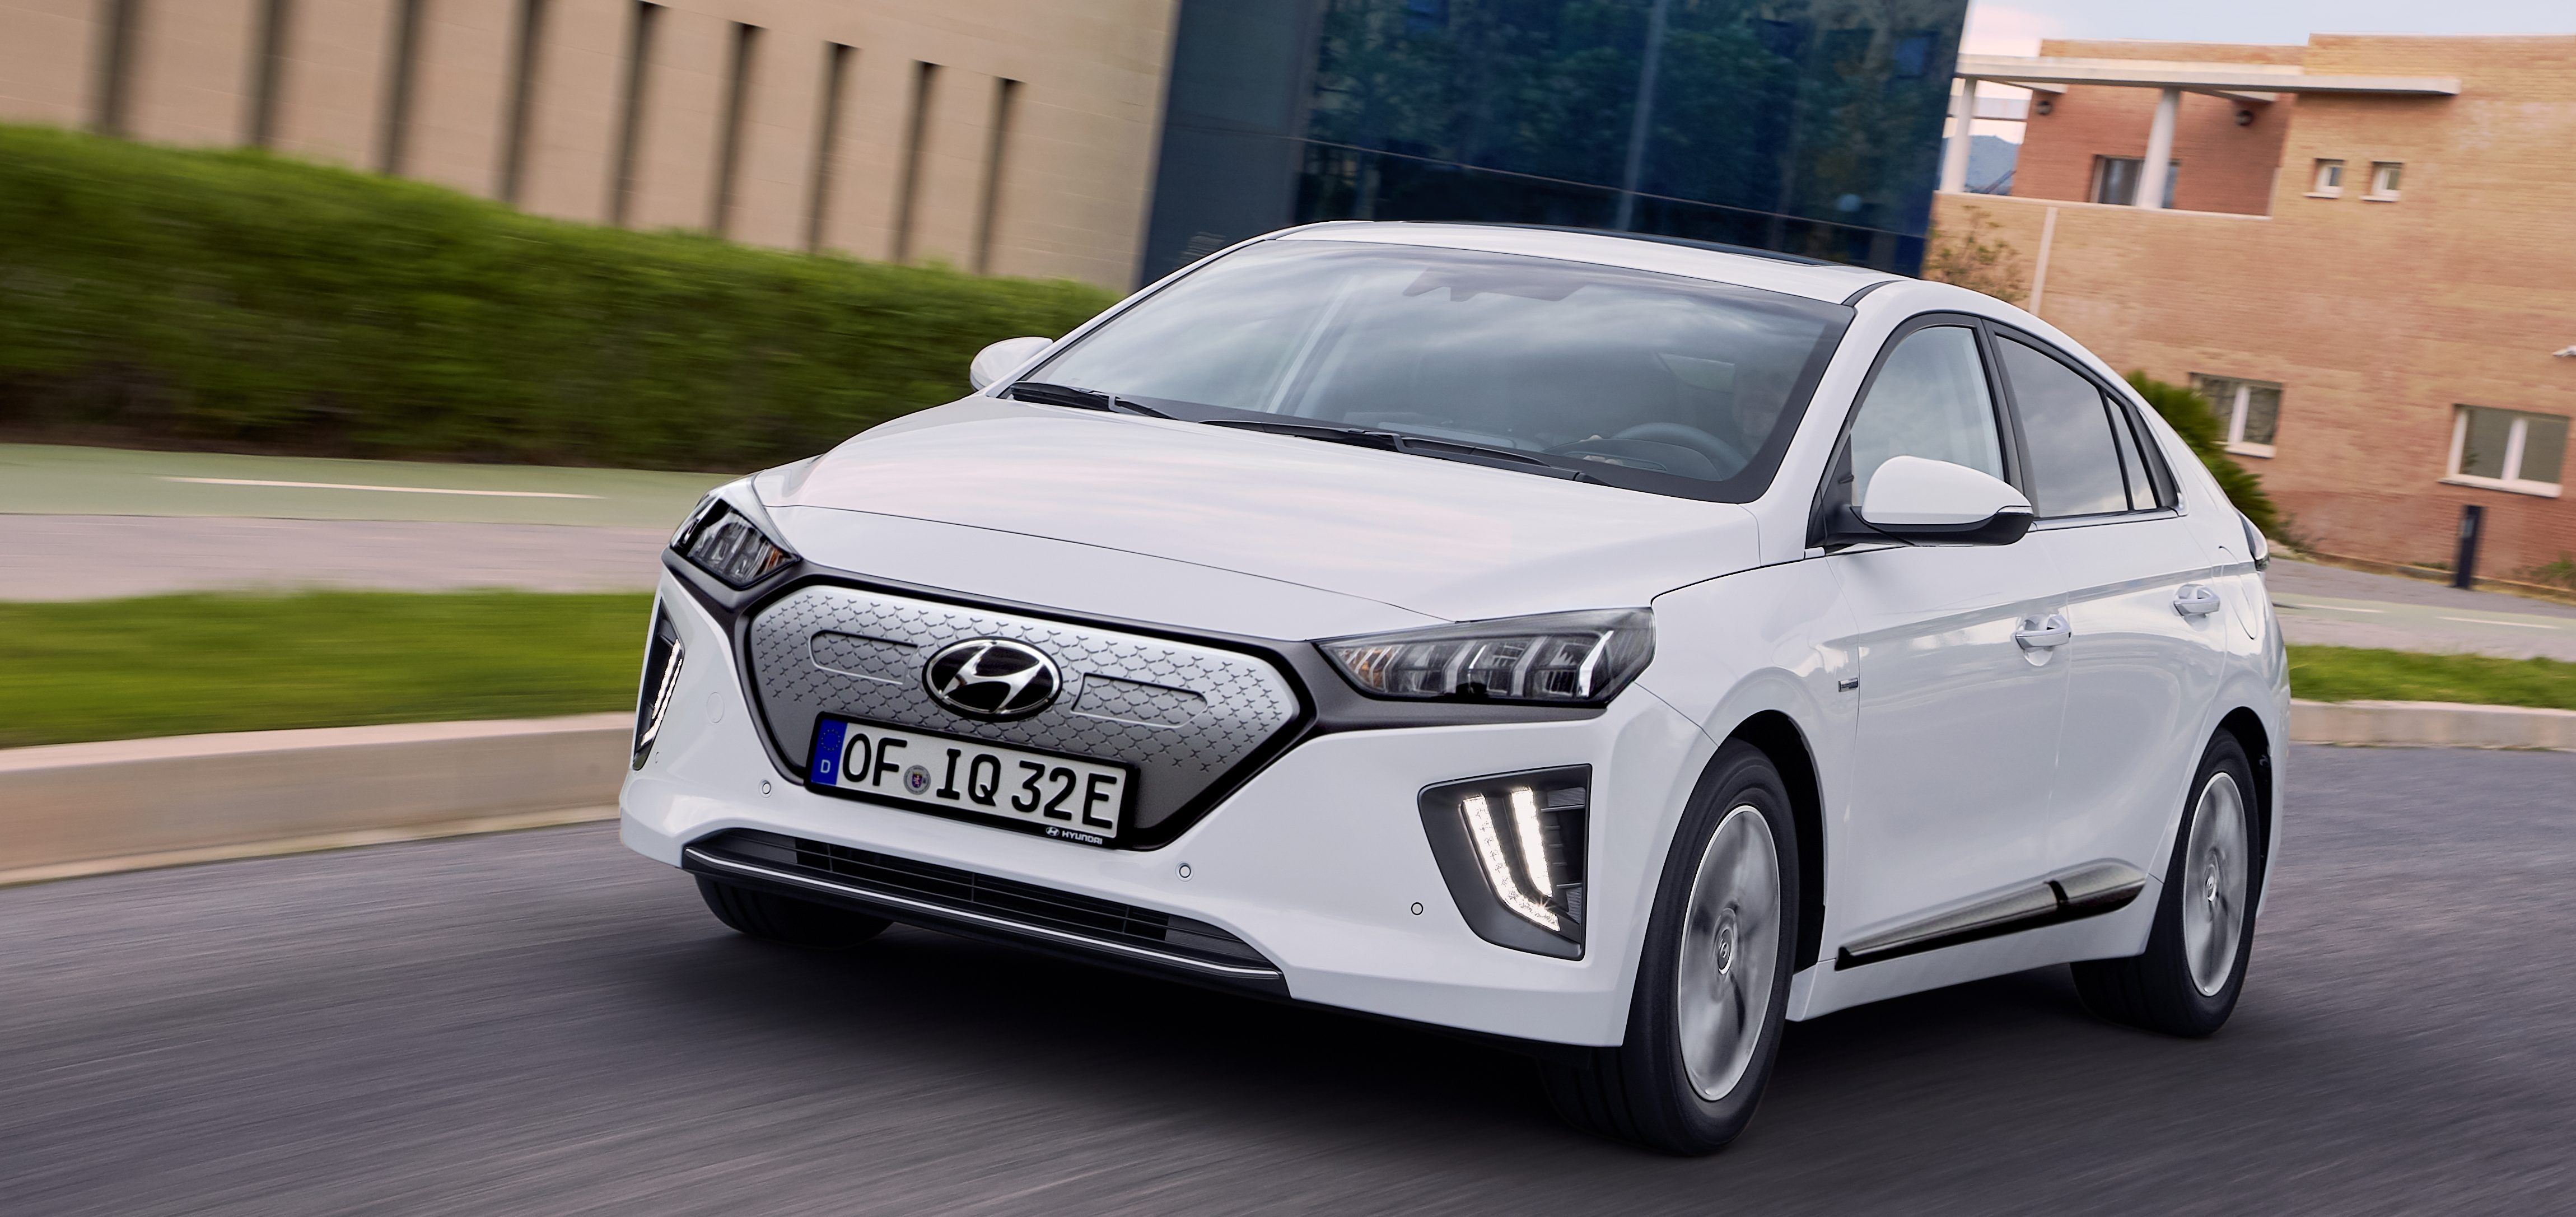 Hyundai Ioniq Electric 2020 S New Range Comes With Higher Price Tag 33 000 Electric Cars Big Battery Nissan Leaf